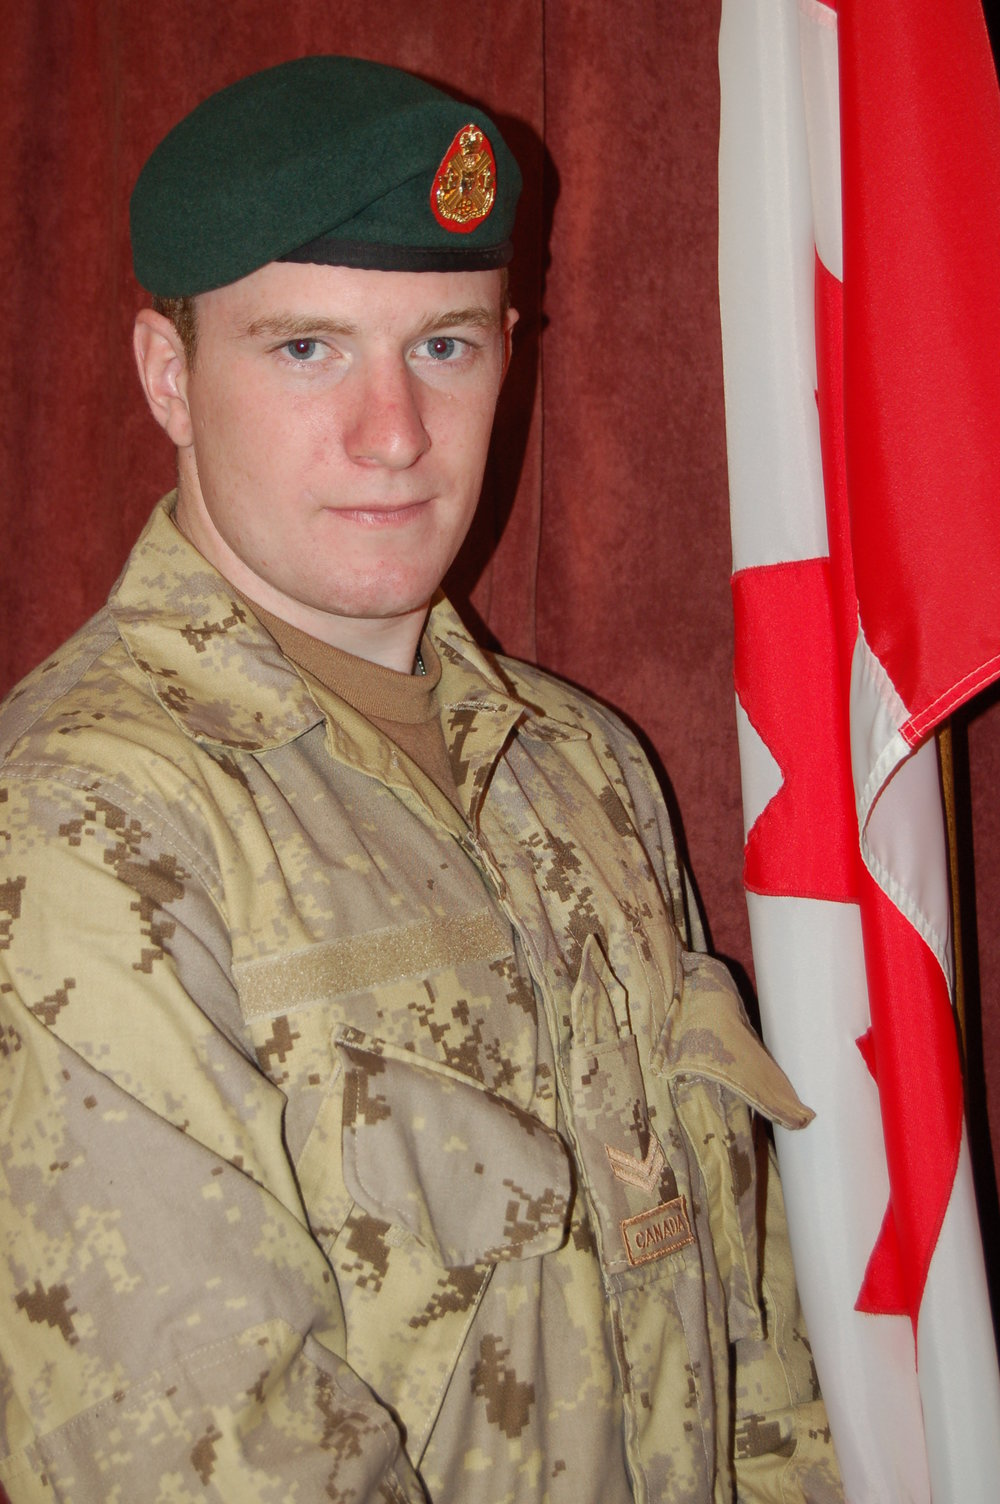 Chad Ford infantry reservist posing next to Canadian flag